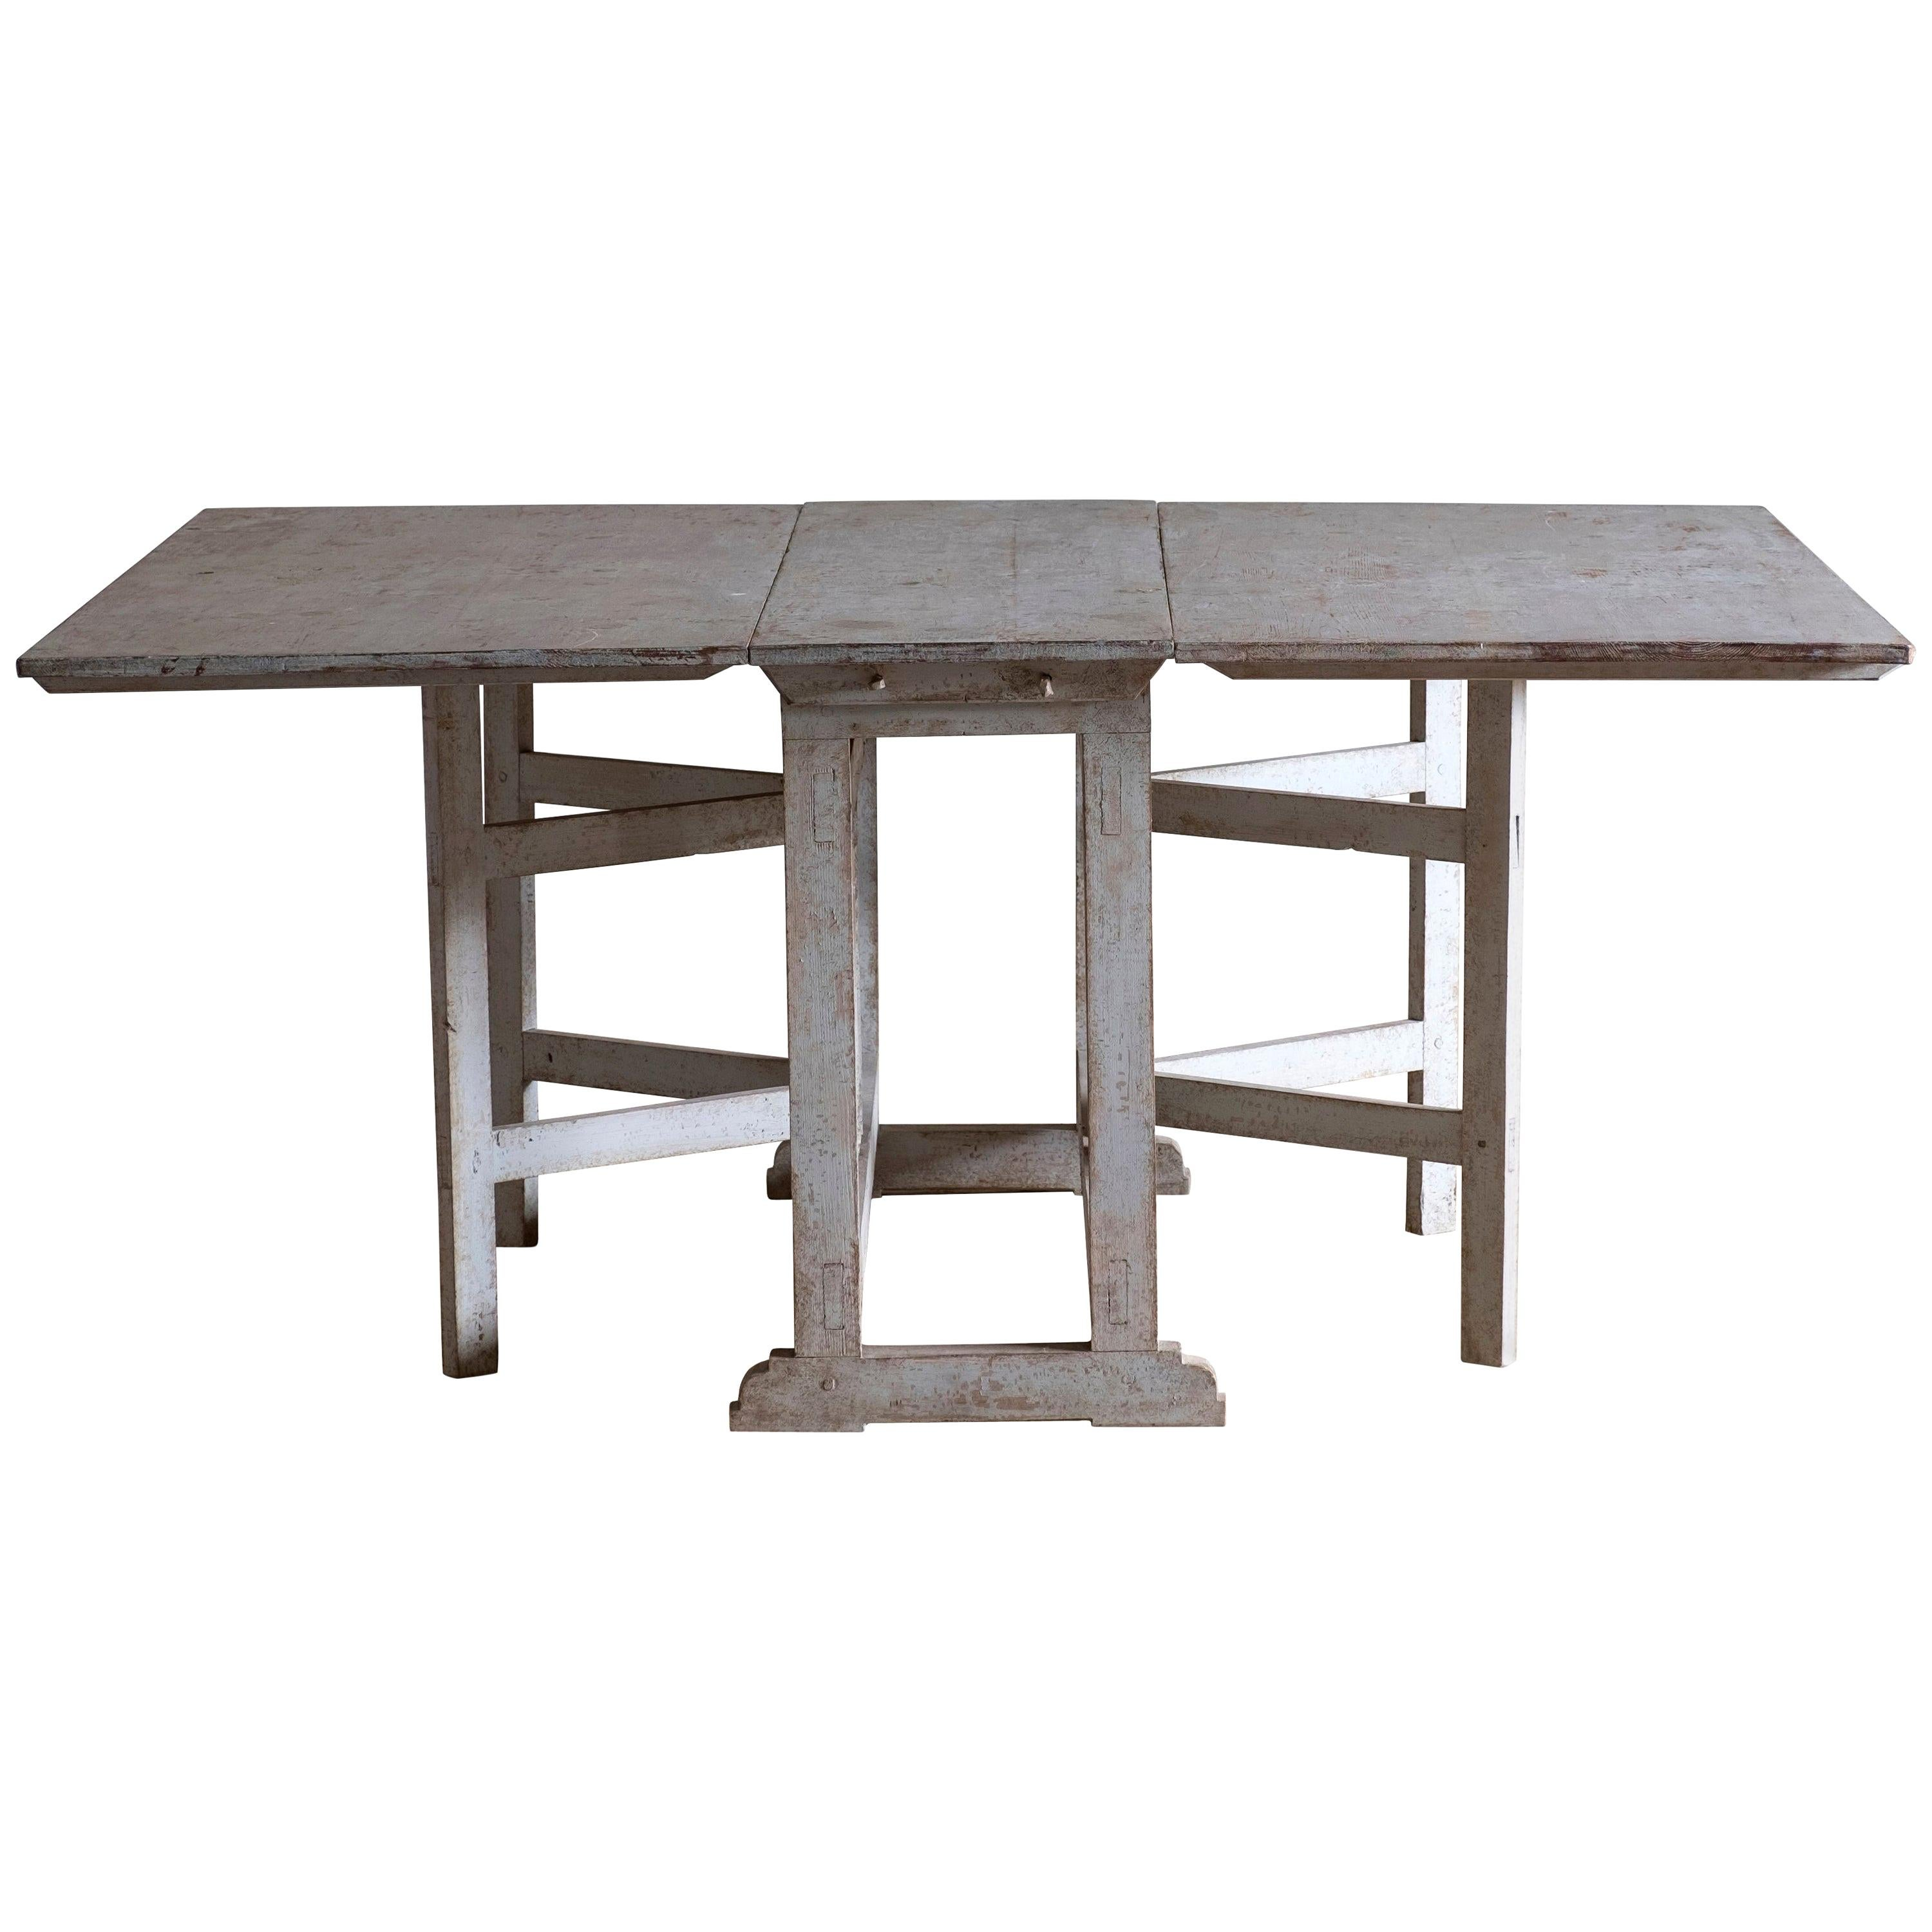 Early 19th Century Gustavian Drop-Leaf Table